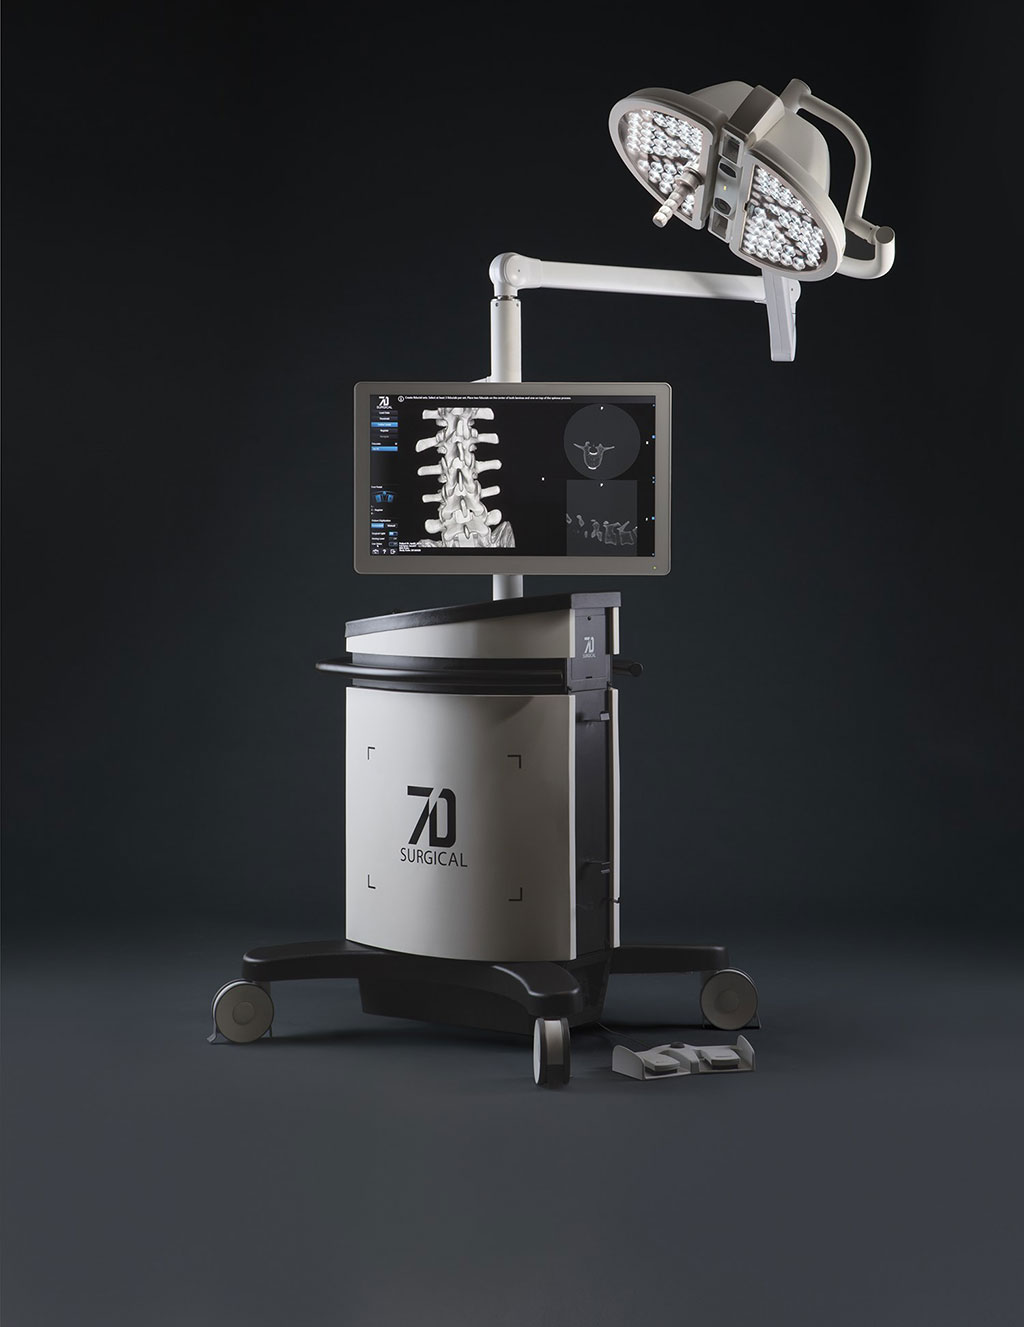 Image: 7D Surgical System (Photo courtesy of 7D Surgical)